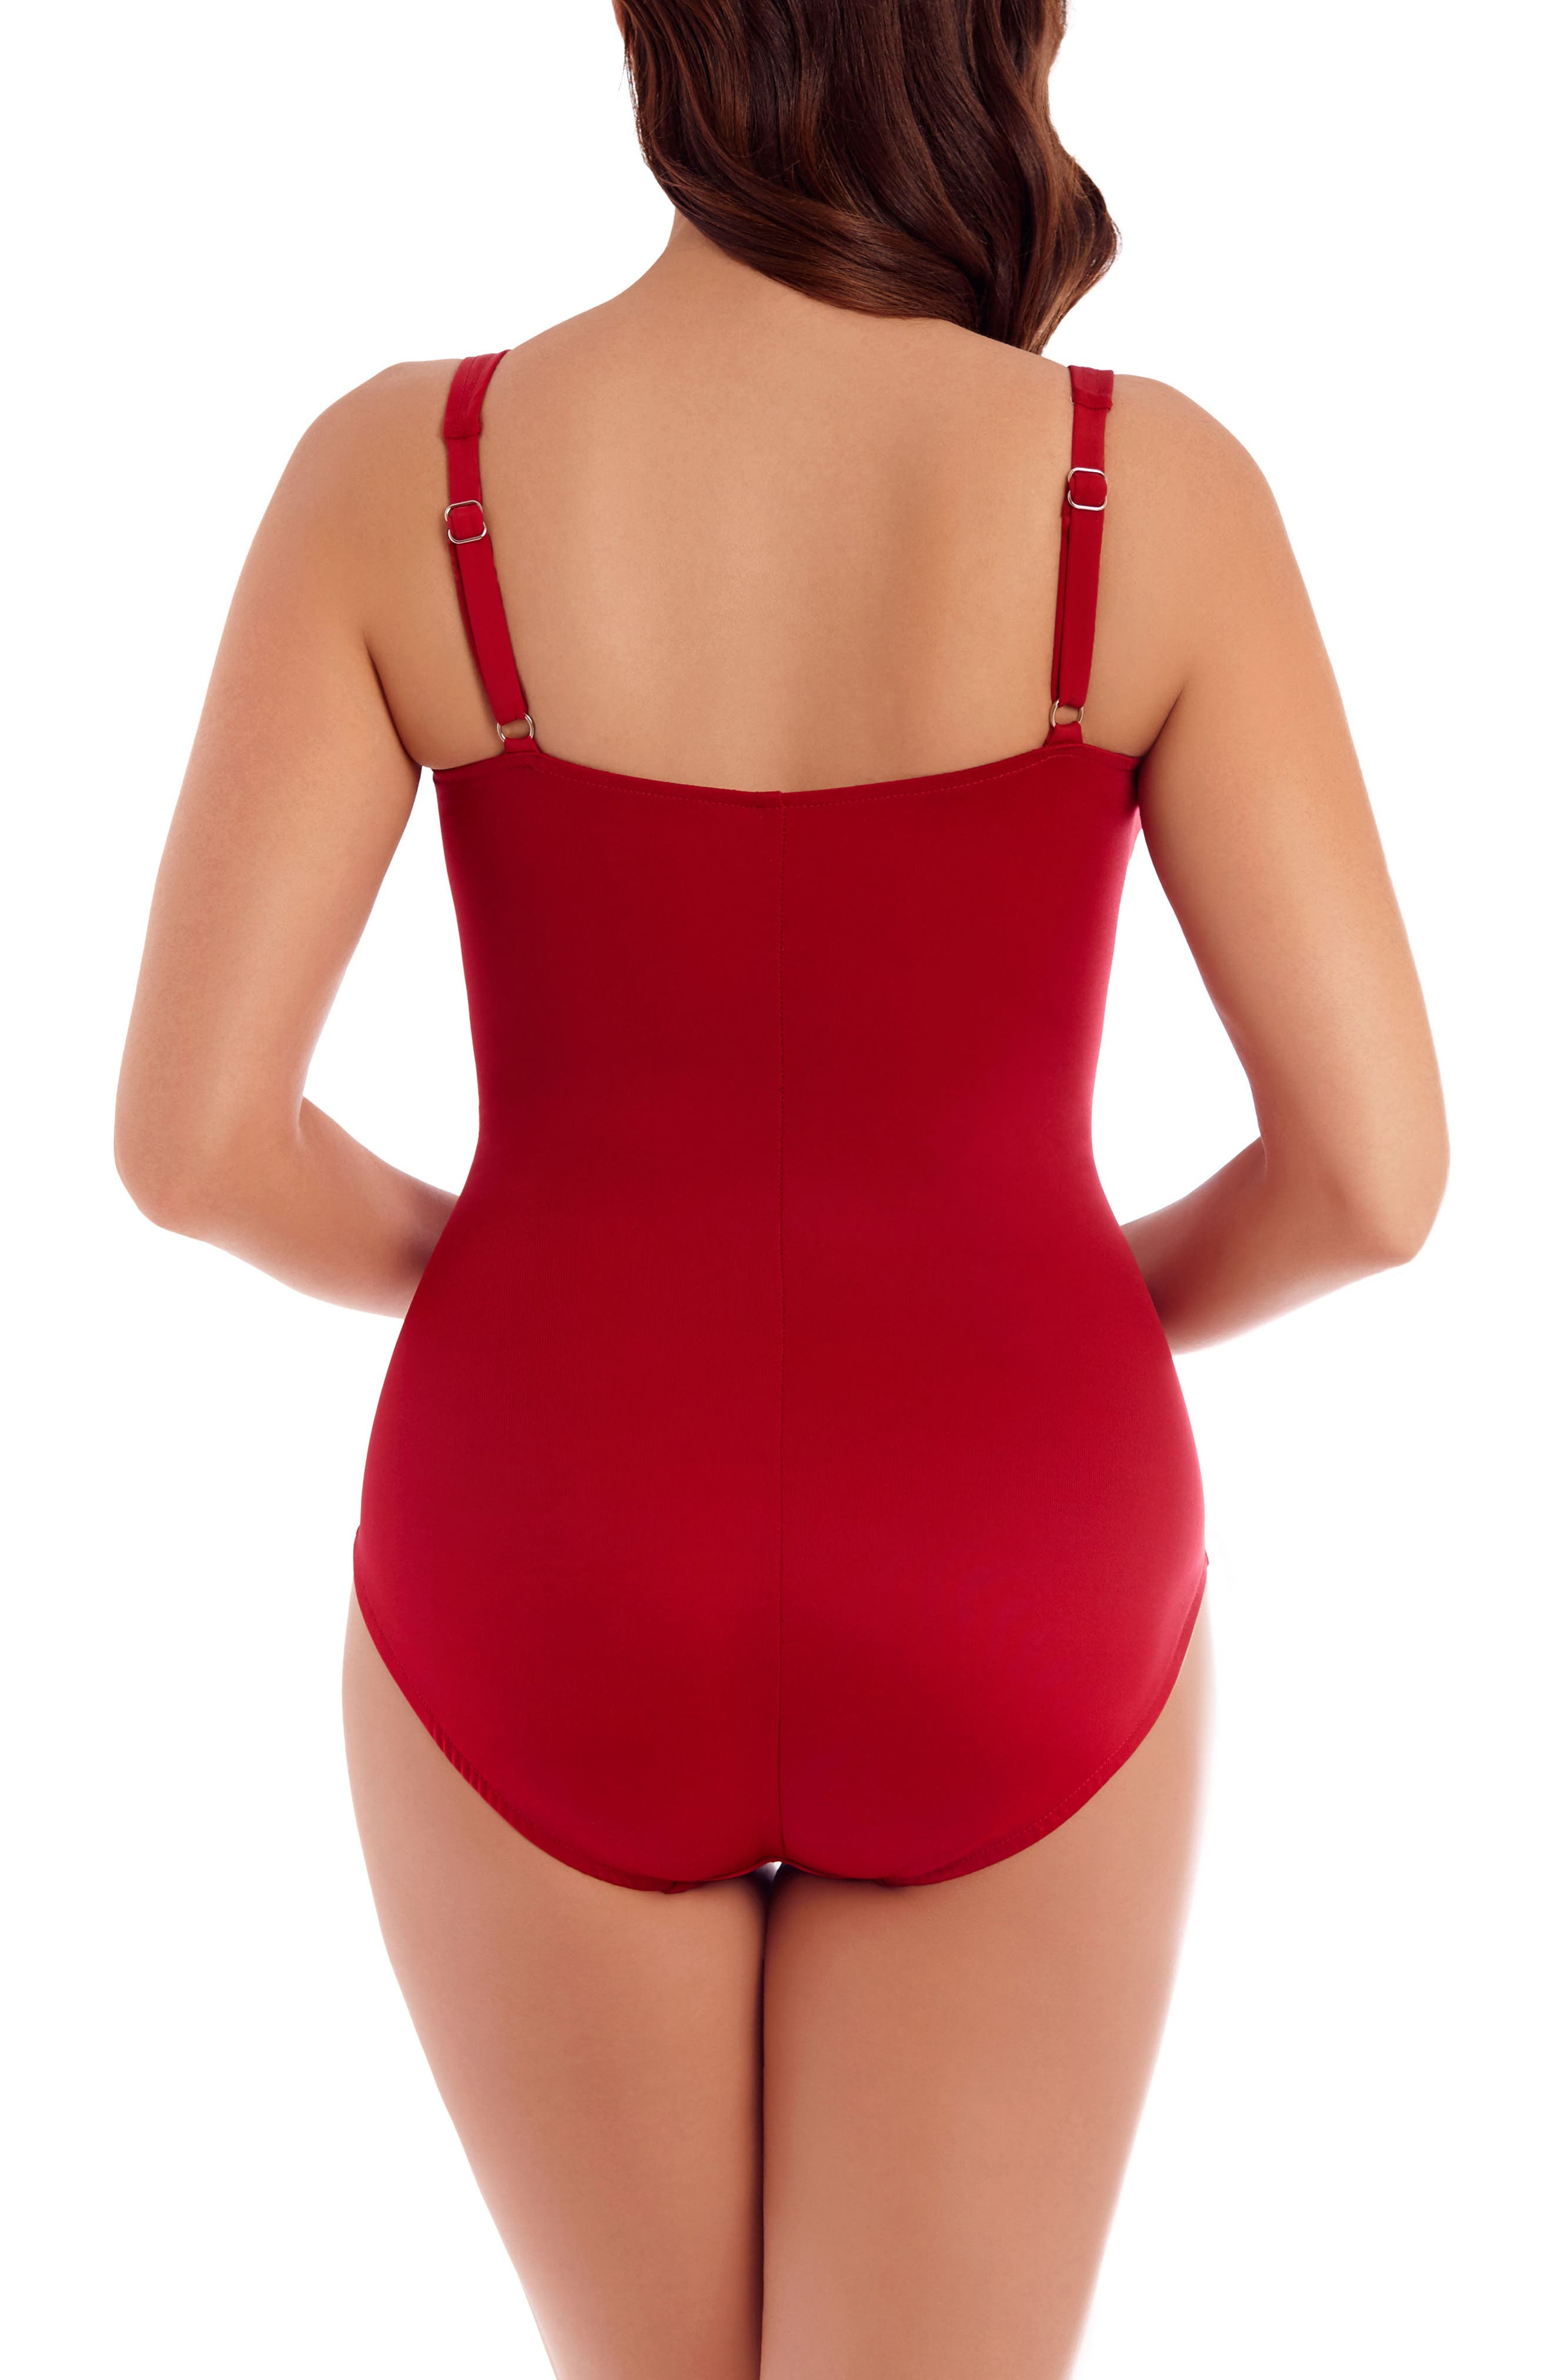 So Riche Zipcode One-Piece Swimsuit,                             Alternate thumbnail 2, color,                             Red